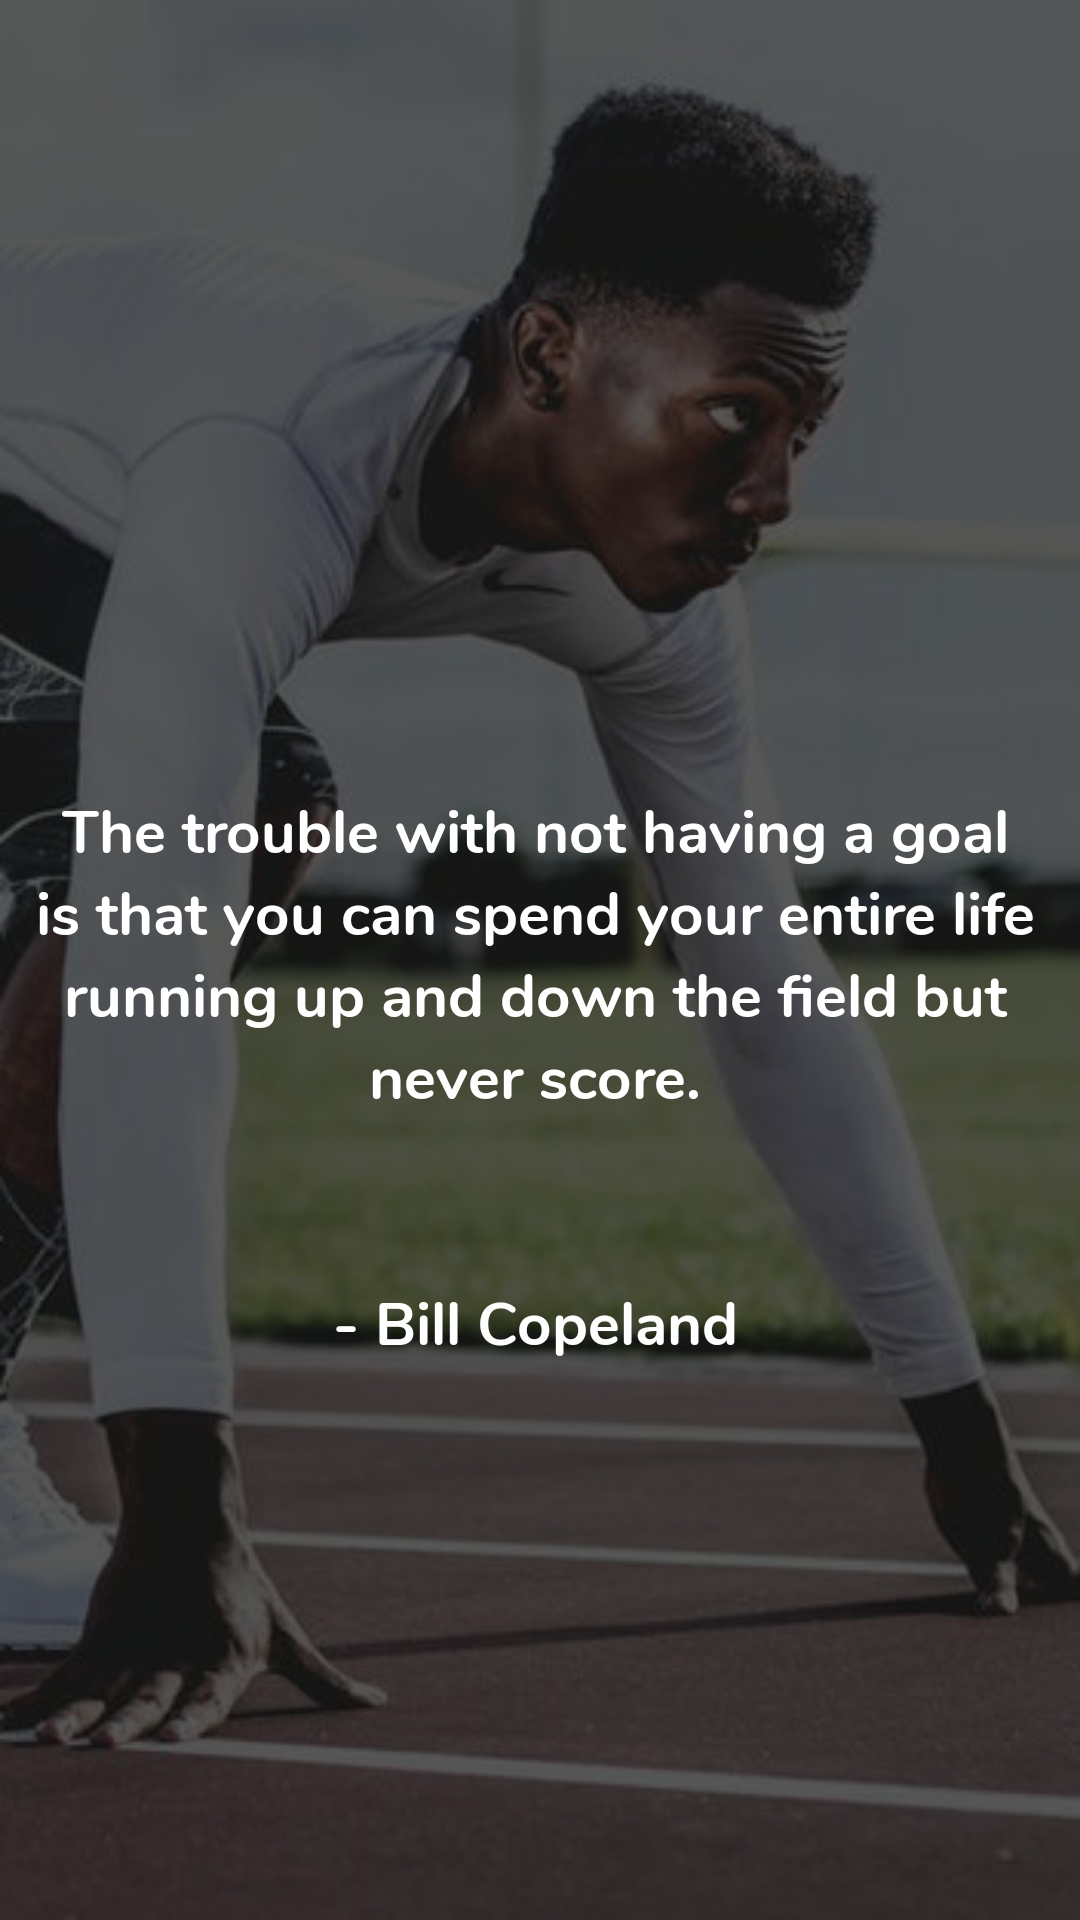 The trouble with not having a goal is that you can spend your entire life running up and down the field but never score.   - Bill Copeland